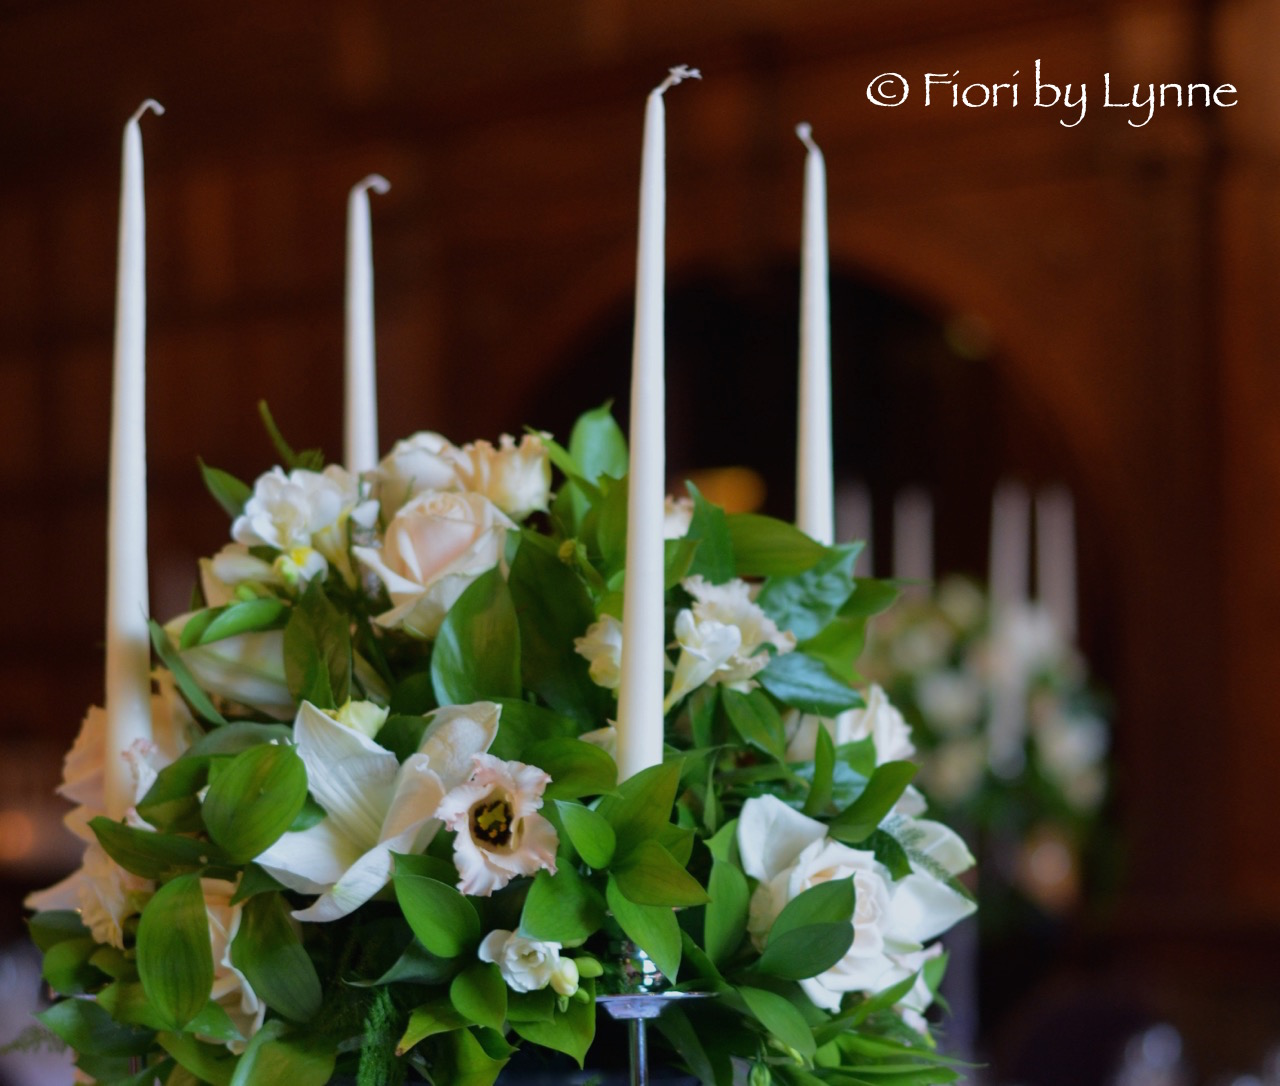 rhinefield-winter-wedding-candelabra-white-amaryllisnude-roselisianthus.jpg